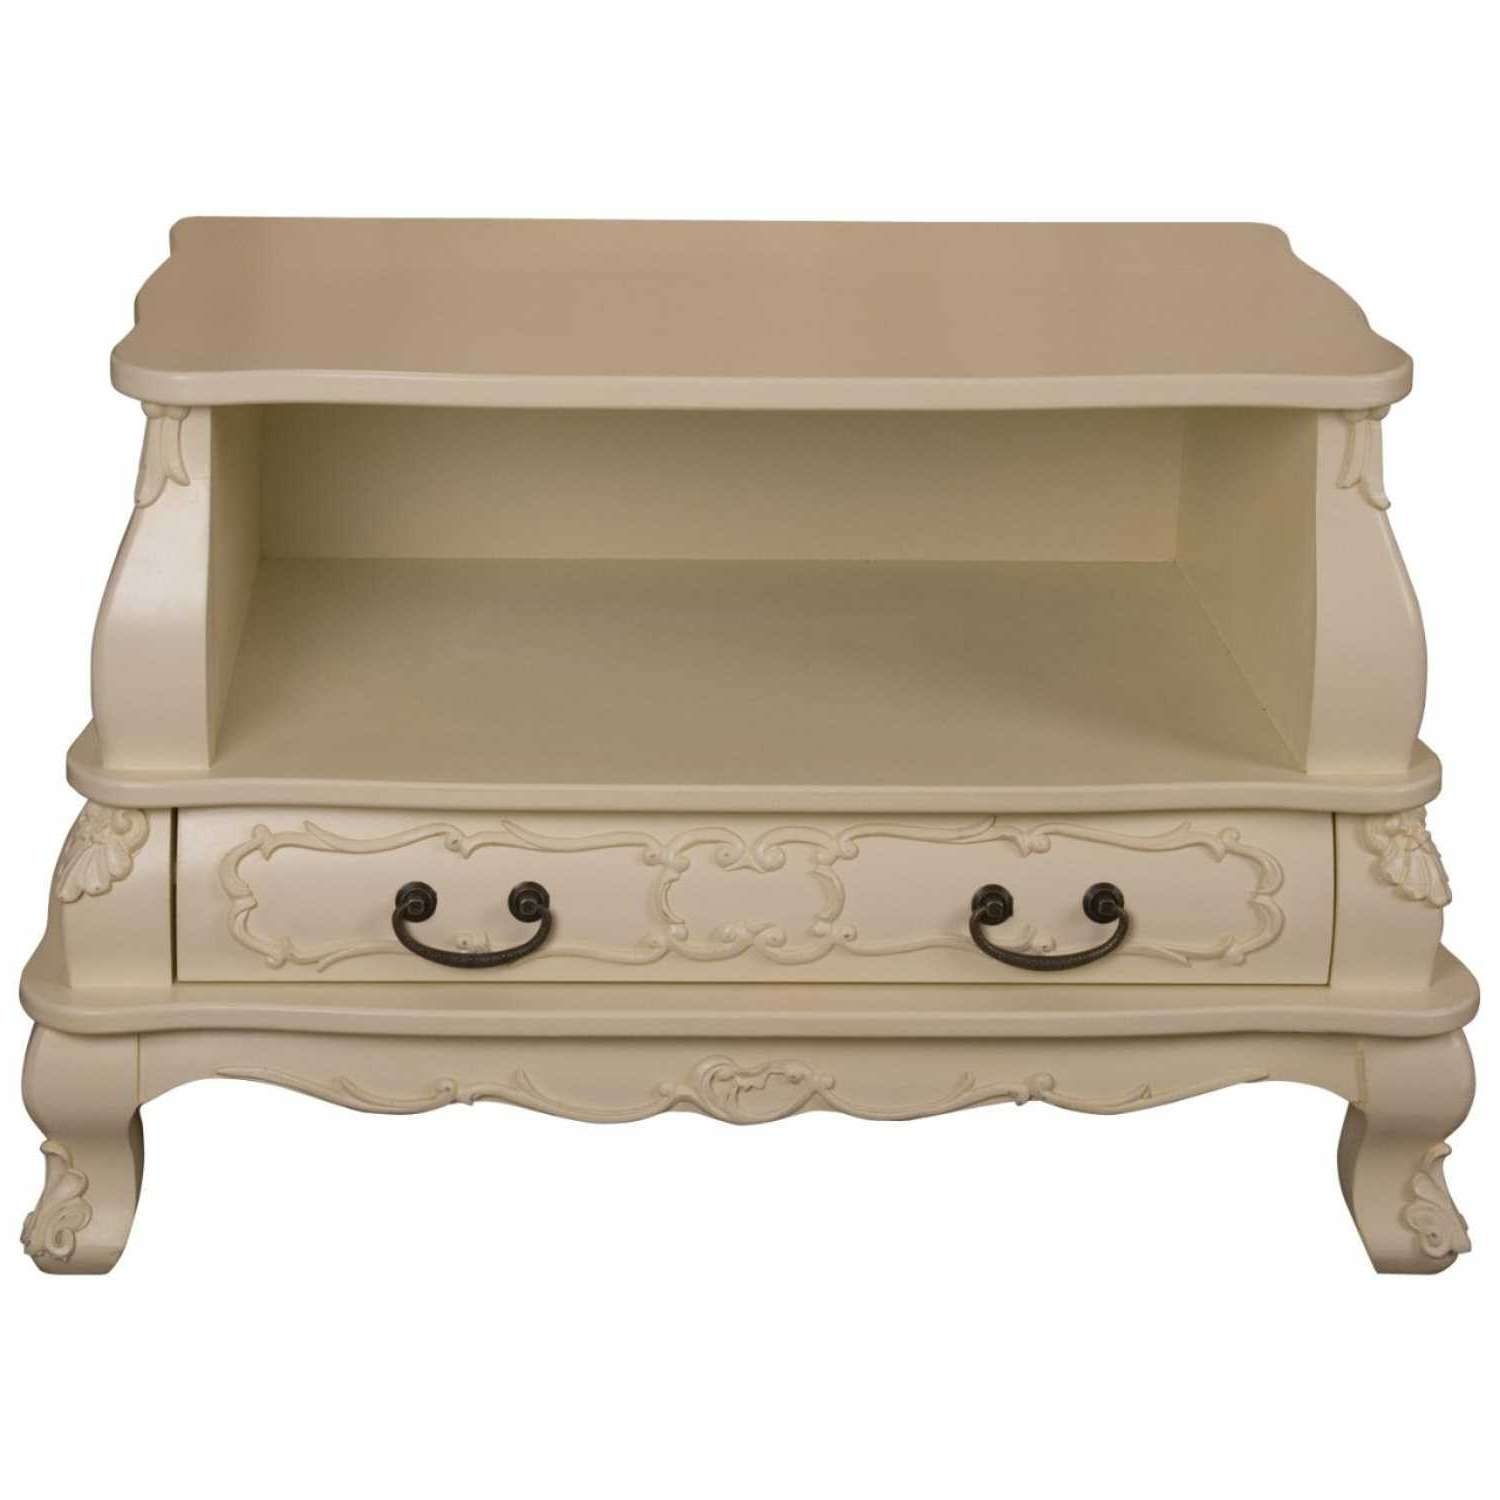 Cream Painted Shabby Chic Bergere Tv Cabinet With Regard To Shabby Chic Tv Cabinets (View 10 of 20)